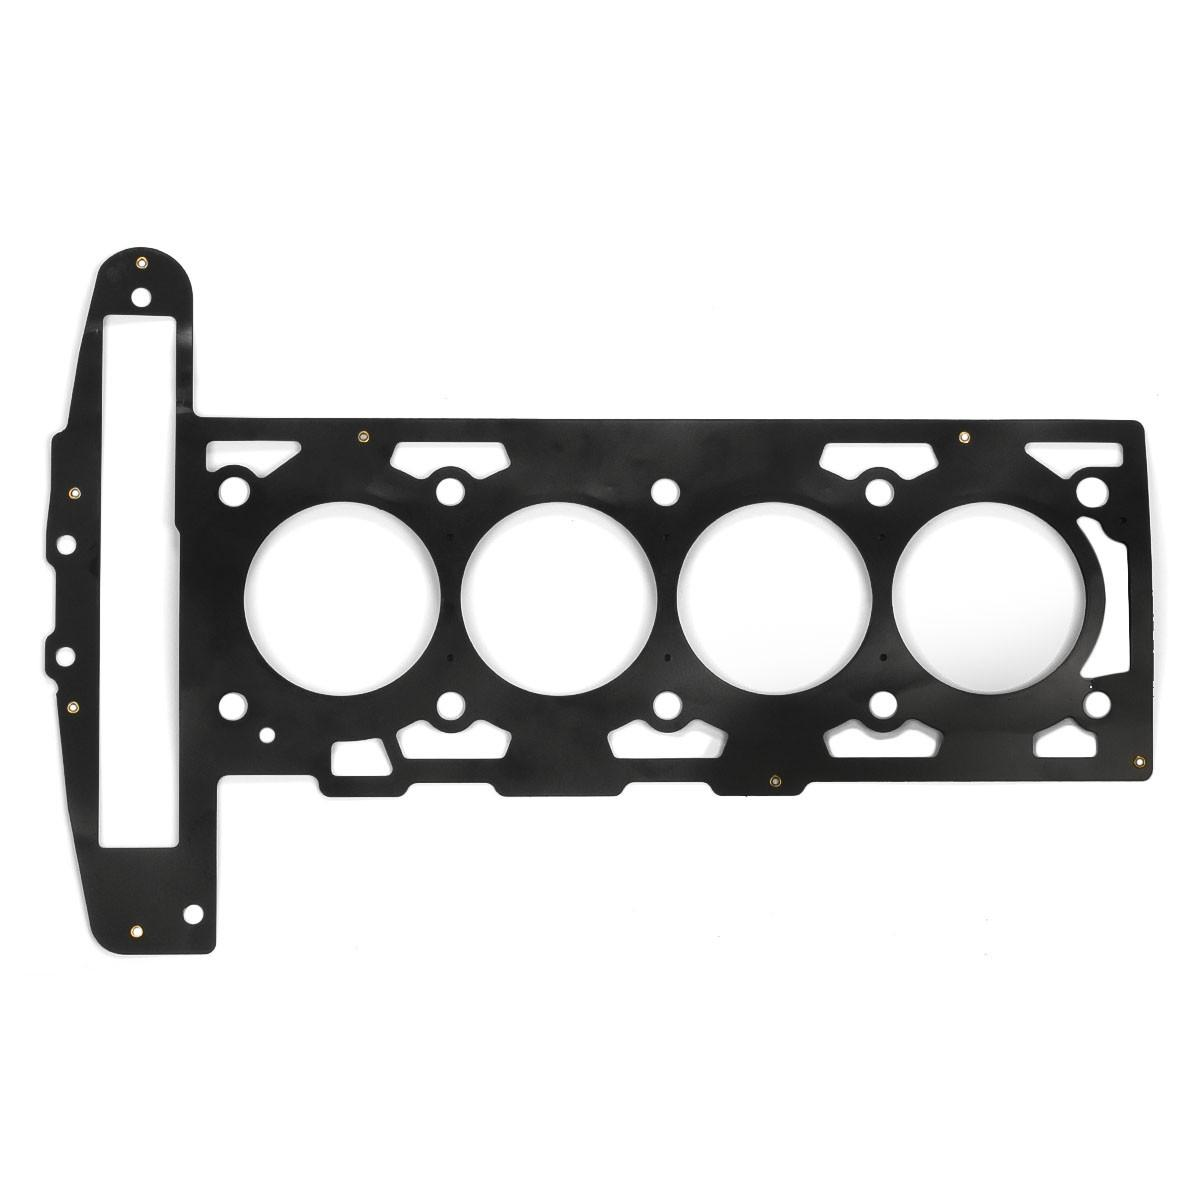 Cylinder Head Gasket 2 Per Engine 07v103147: Cylinder Head Gasket Bolts Kit For 02-06 GMC Chevrolet